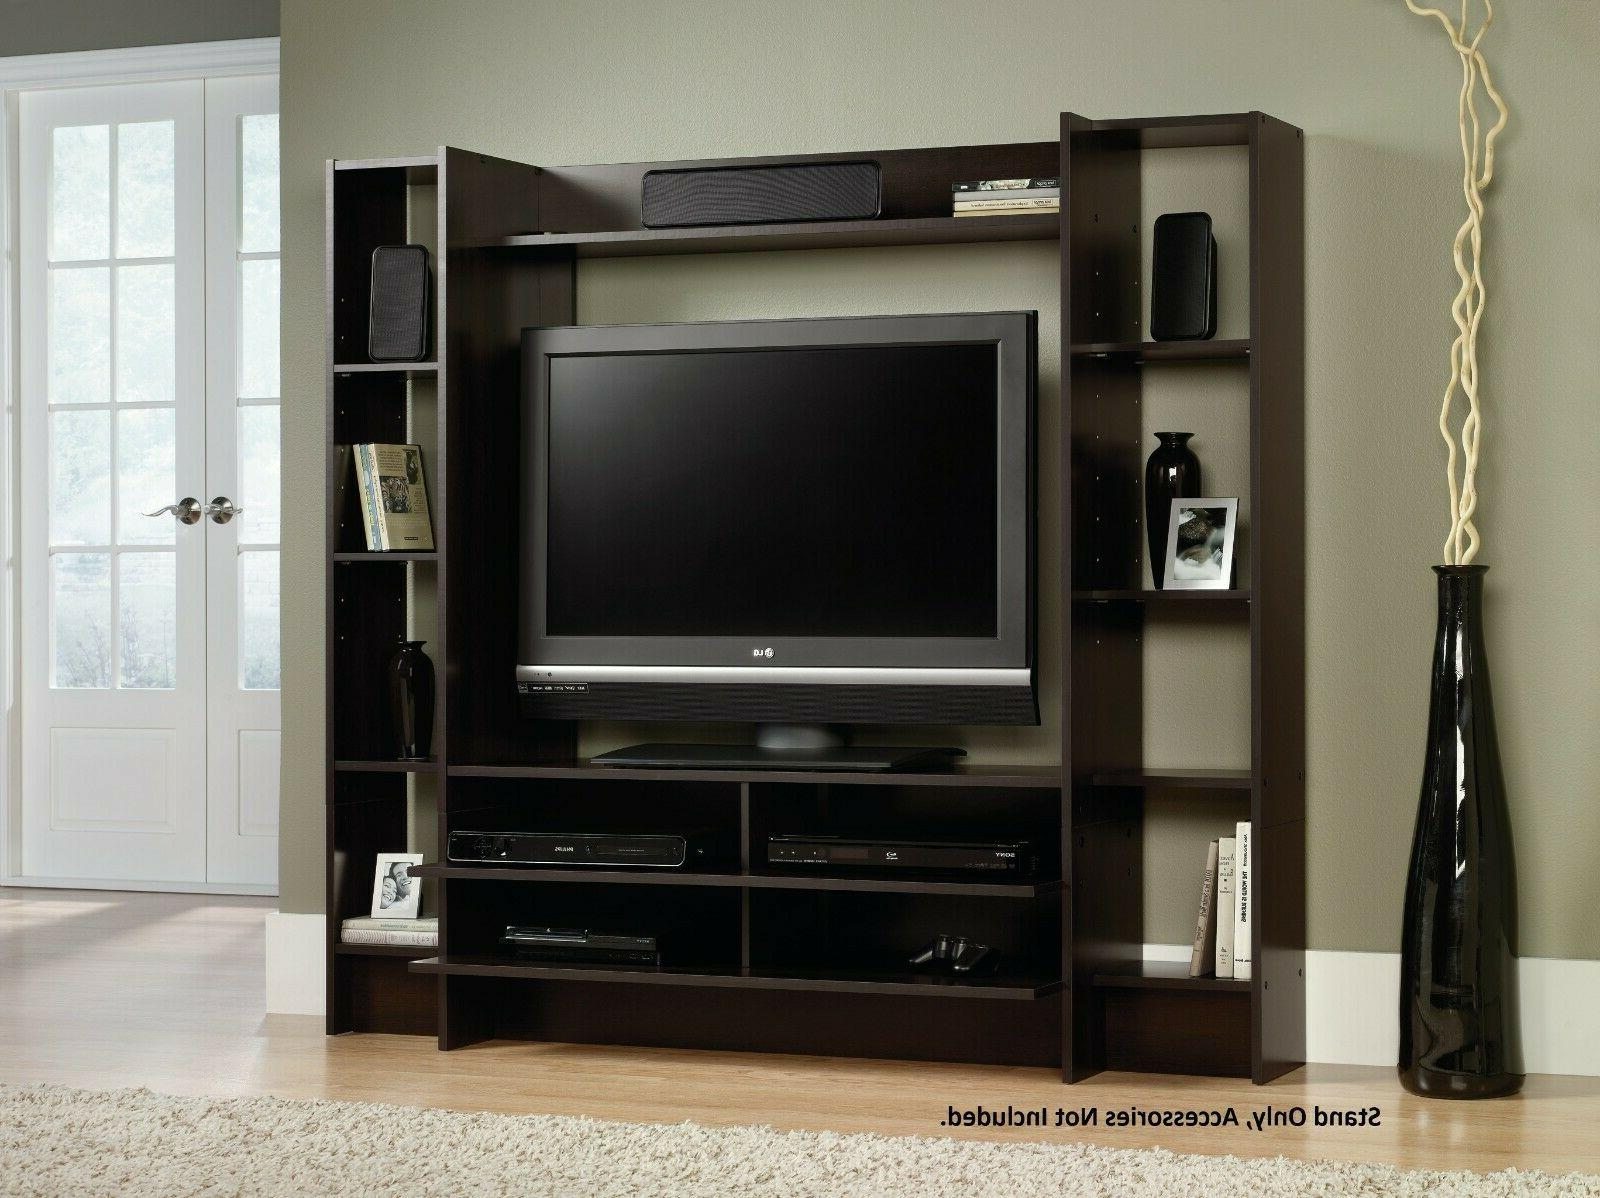 TV Entertainment Center Stand Wall Unit Cabinet Storage Disp